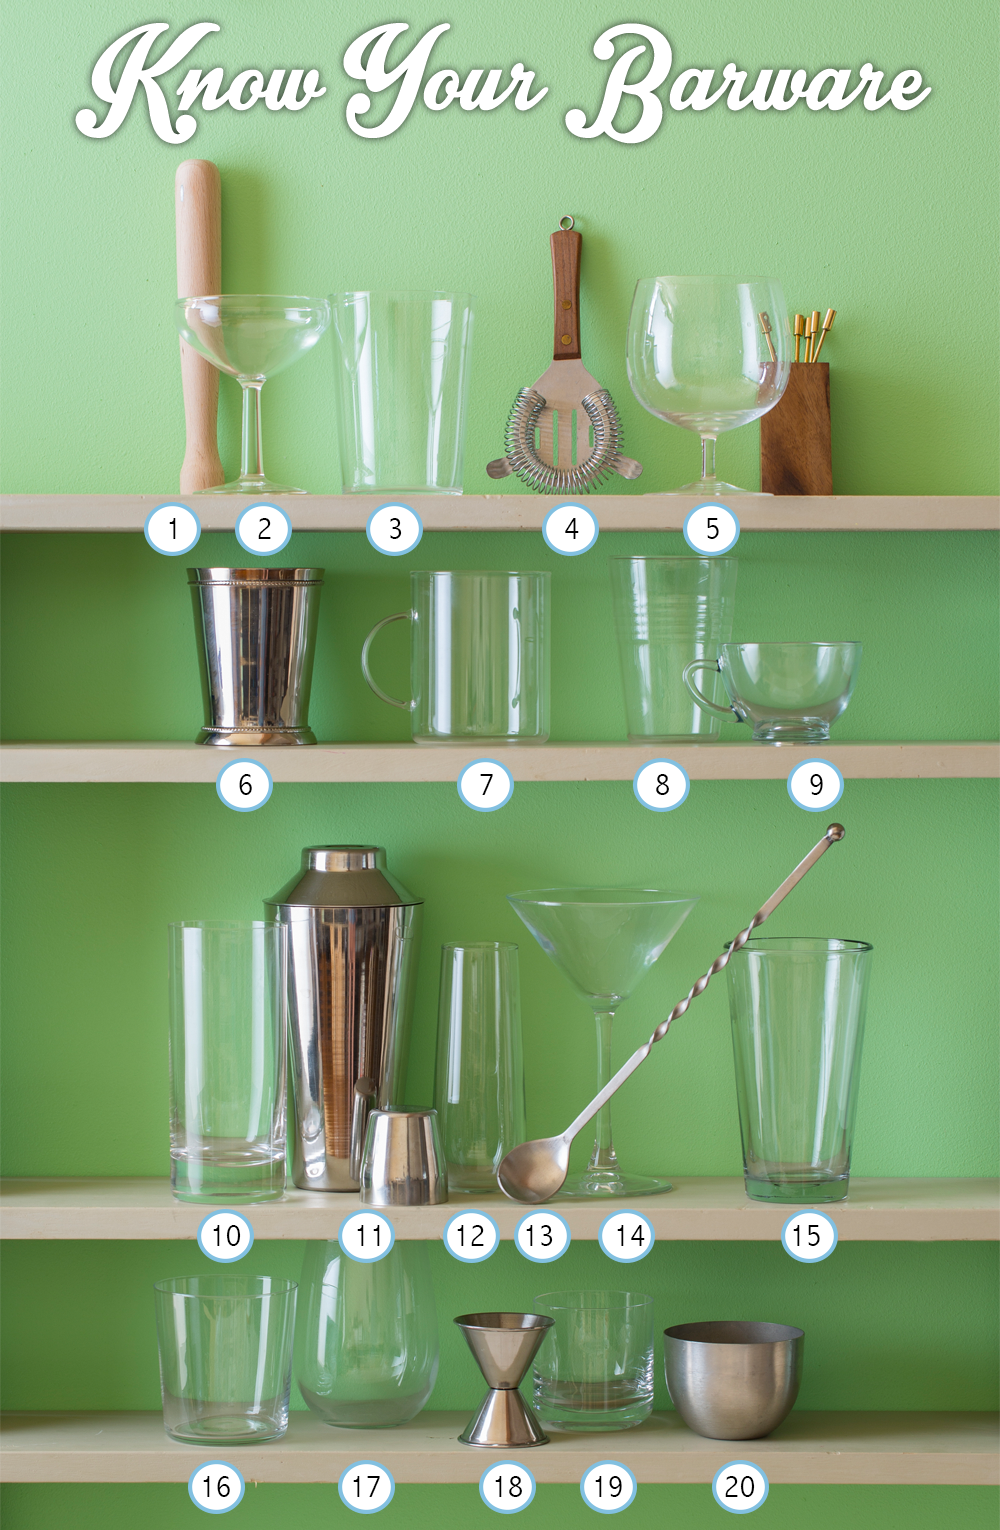 Your guide to barware essentials! Learn which basic tools you need, and what kind.